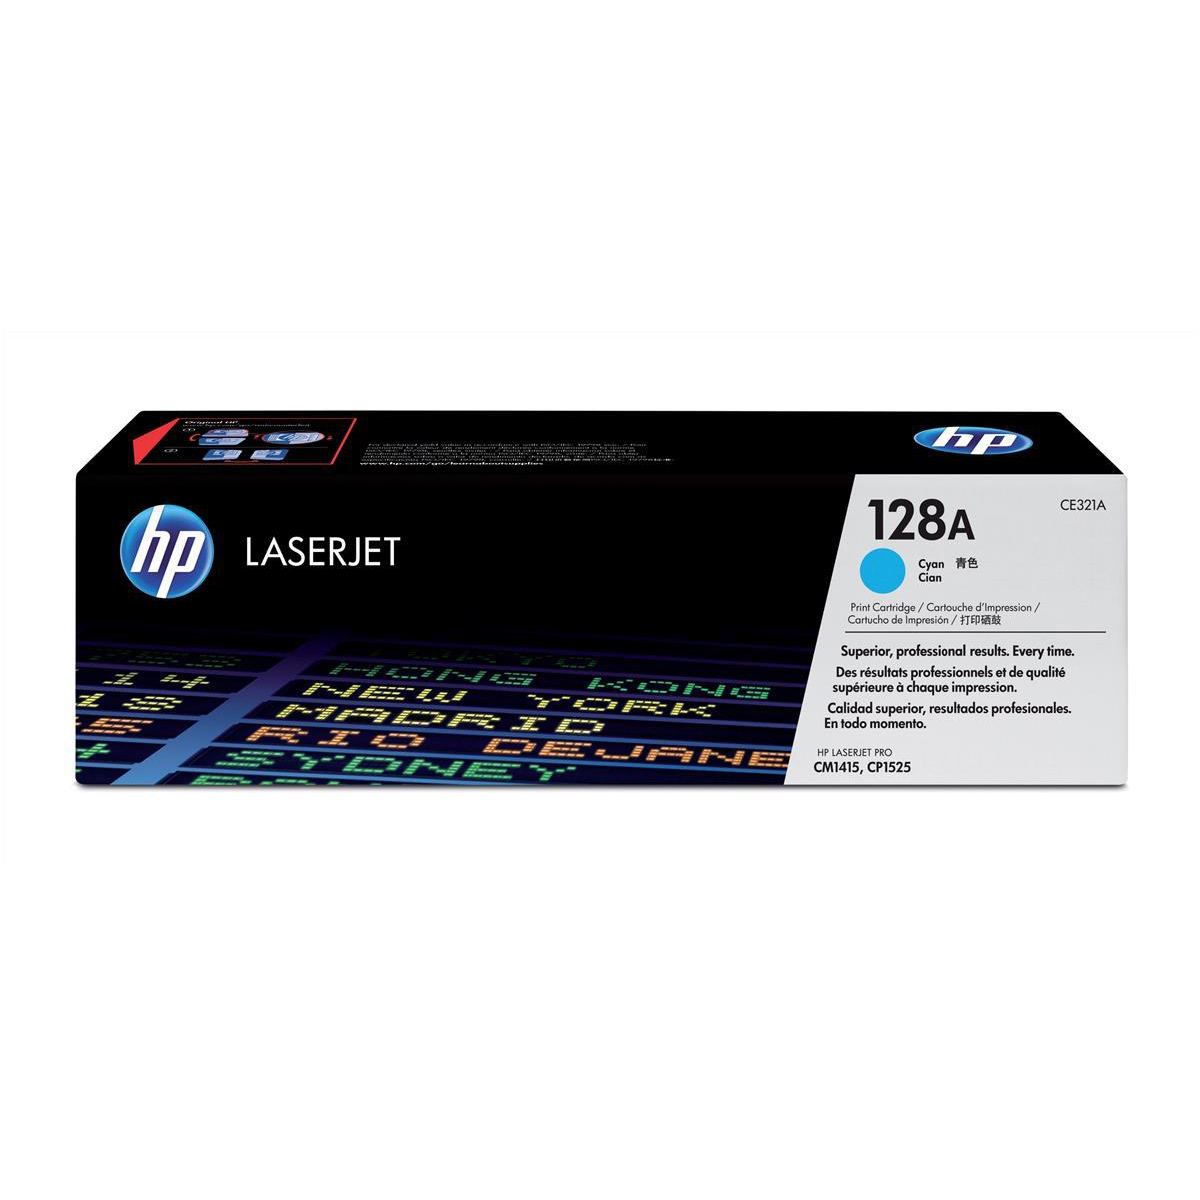 HP 128A Laser Toner Cartridge Page Life 1300pp Cyan Ref CE321A